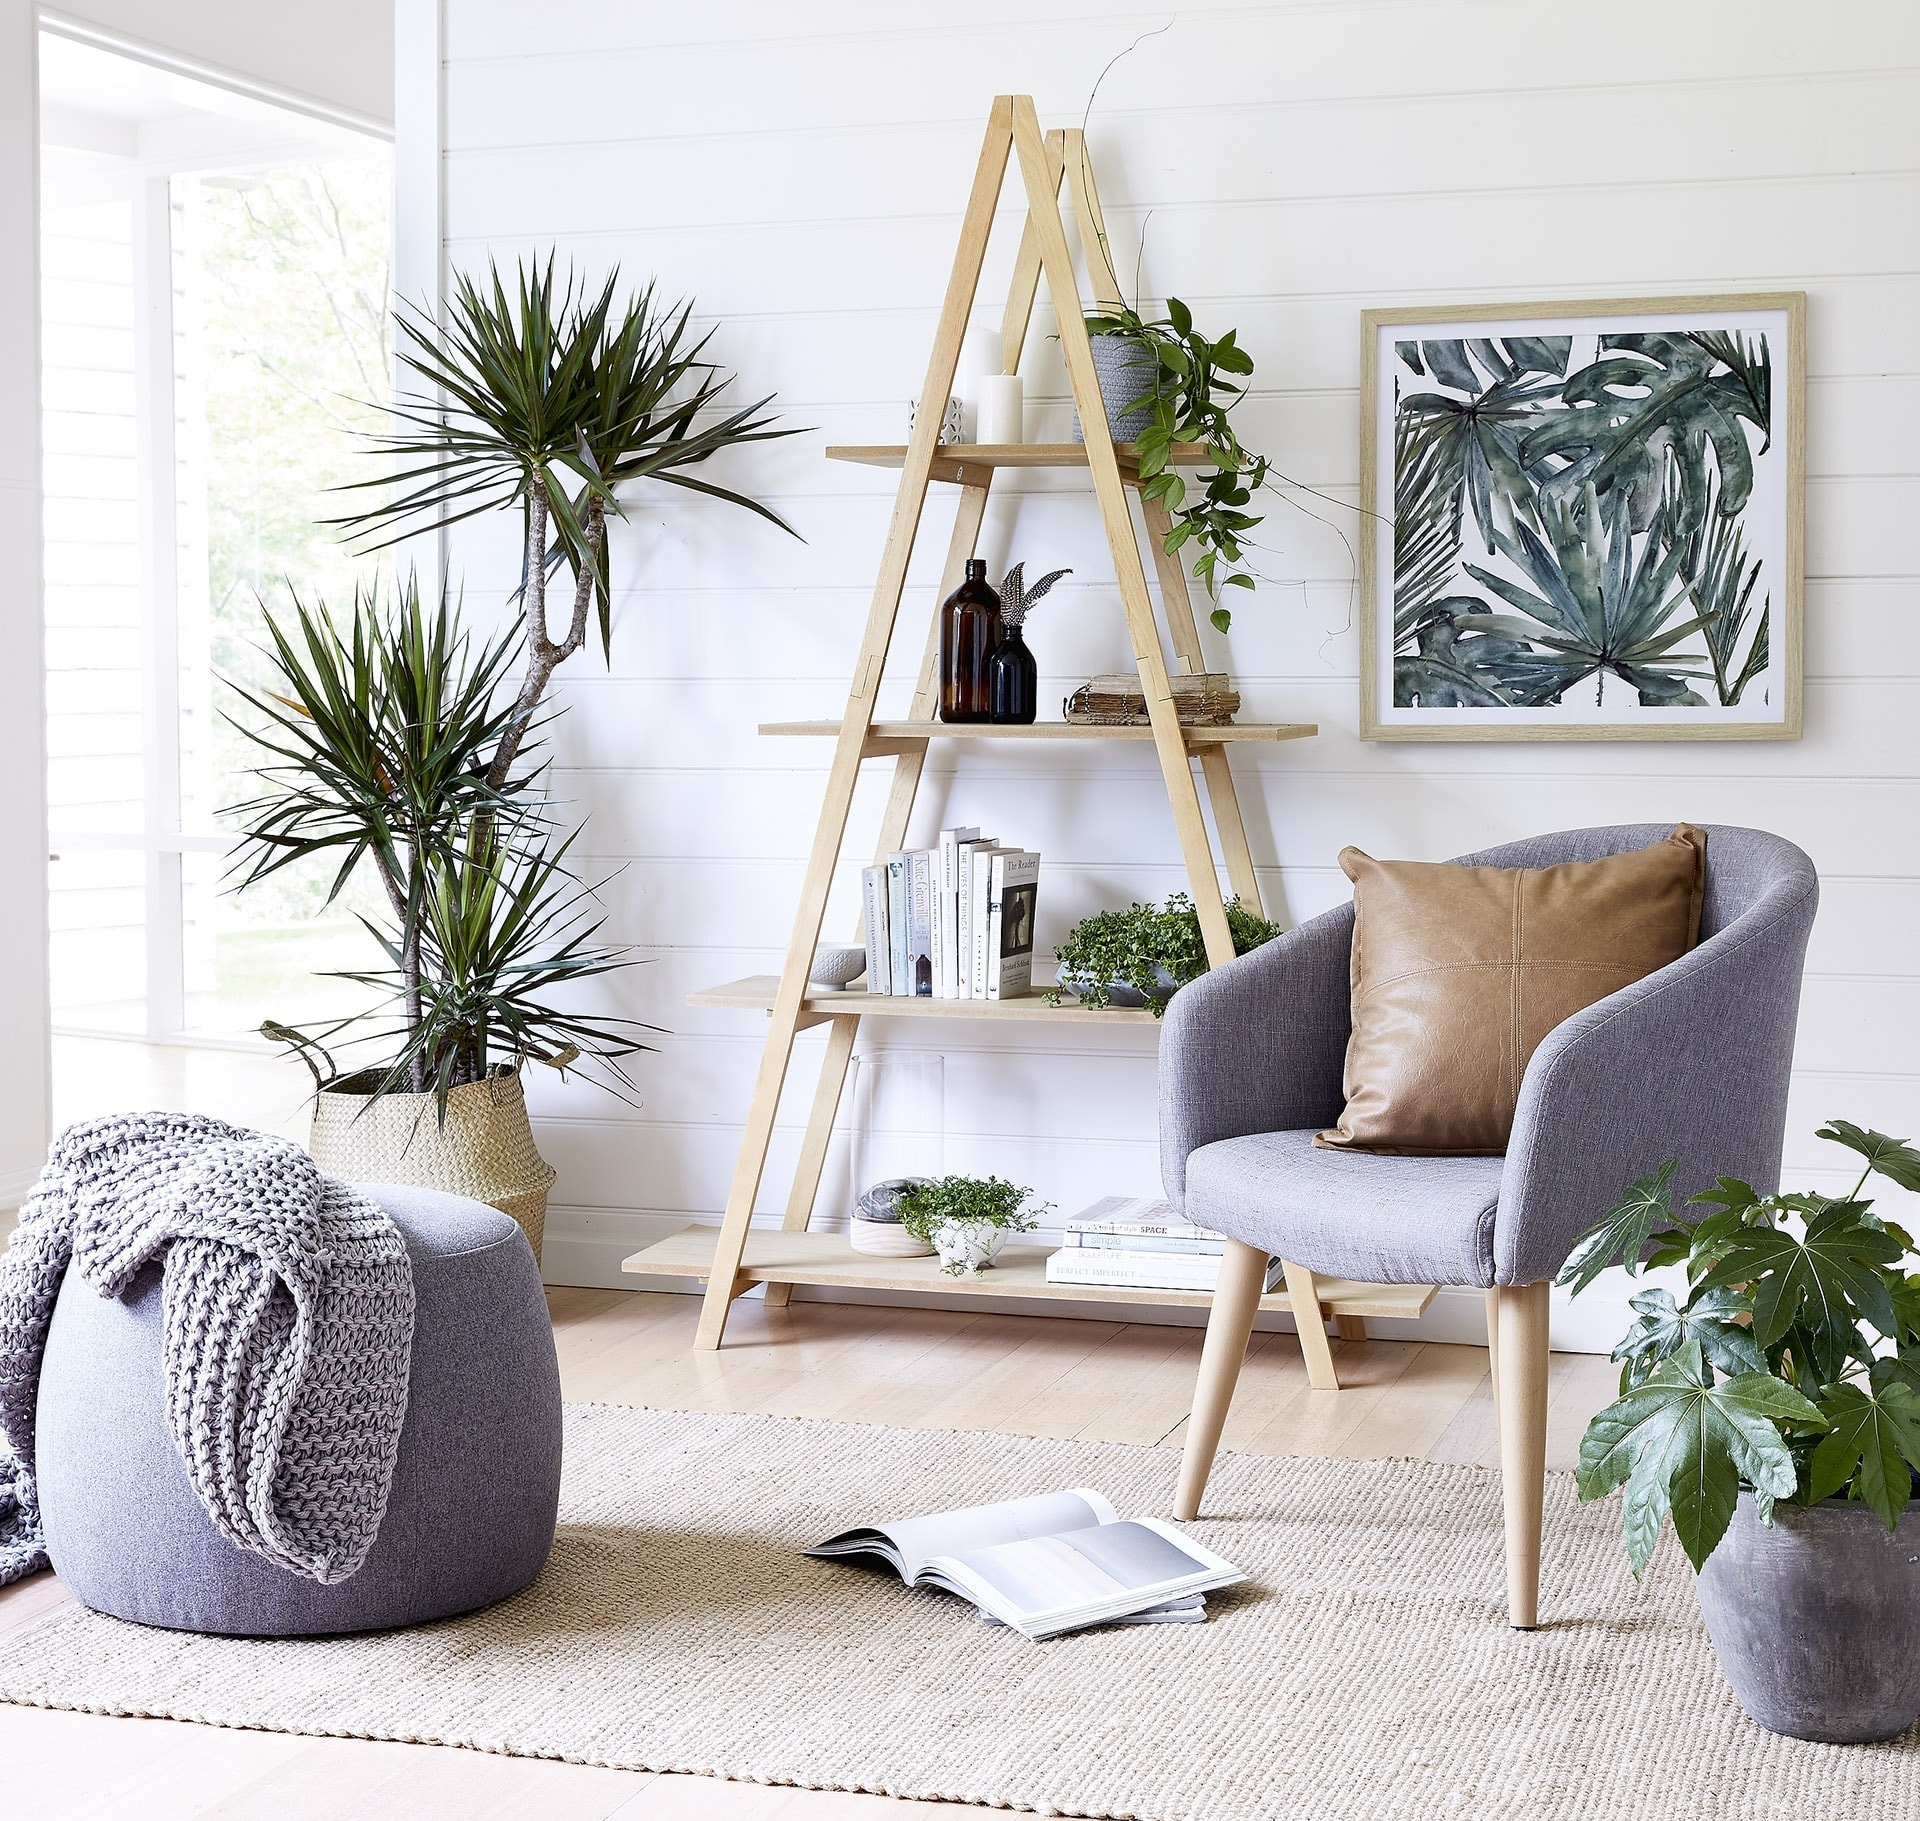 Behind The Scenes With The Kmart Design Team Tlc Interiors